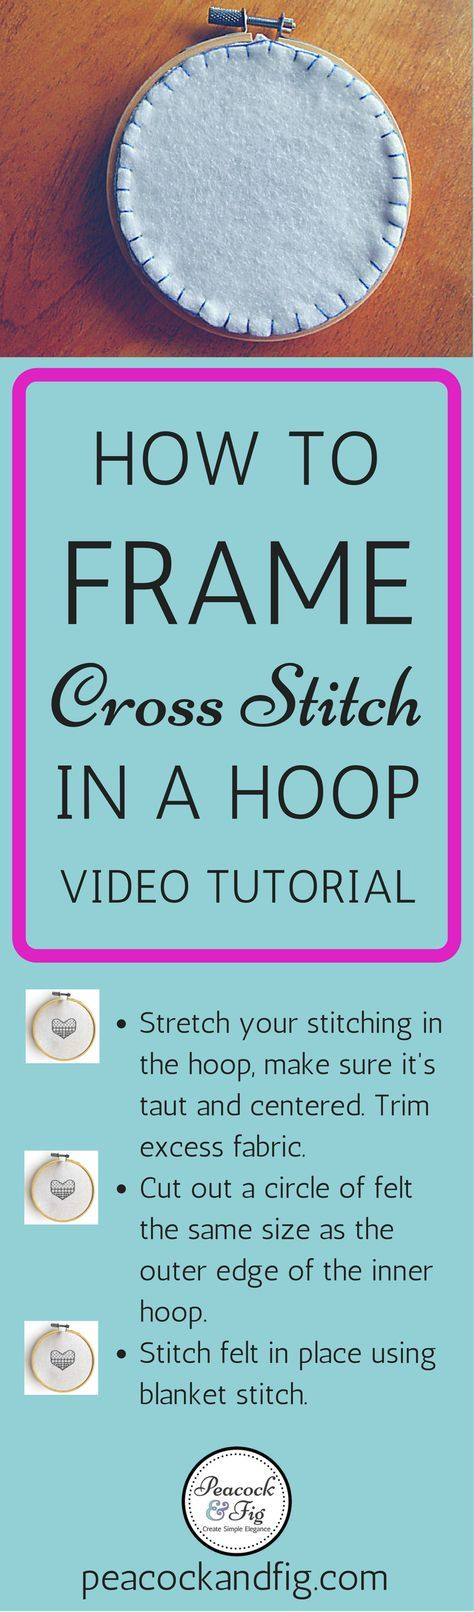 Have you ever wondered how to frame cross stitch in an embroidery hoop, rather than in a frame? This video tutorial will show you how to do this popular technique quickly and easily, and a free cross stitch pattern at peacockandfig.com is shown as well!